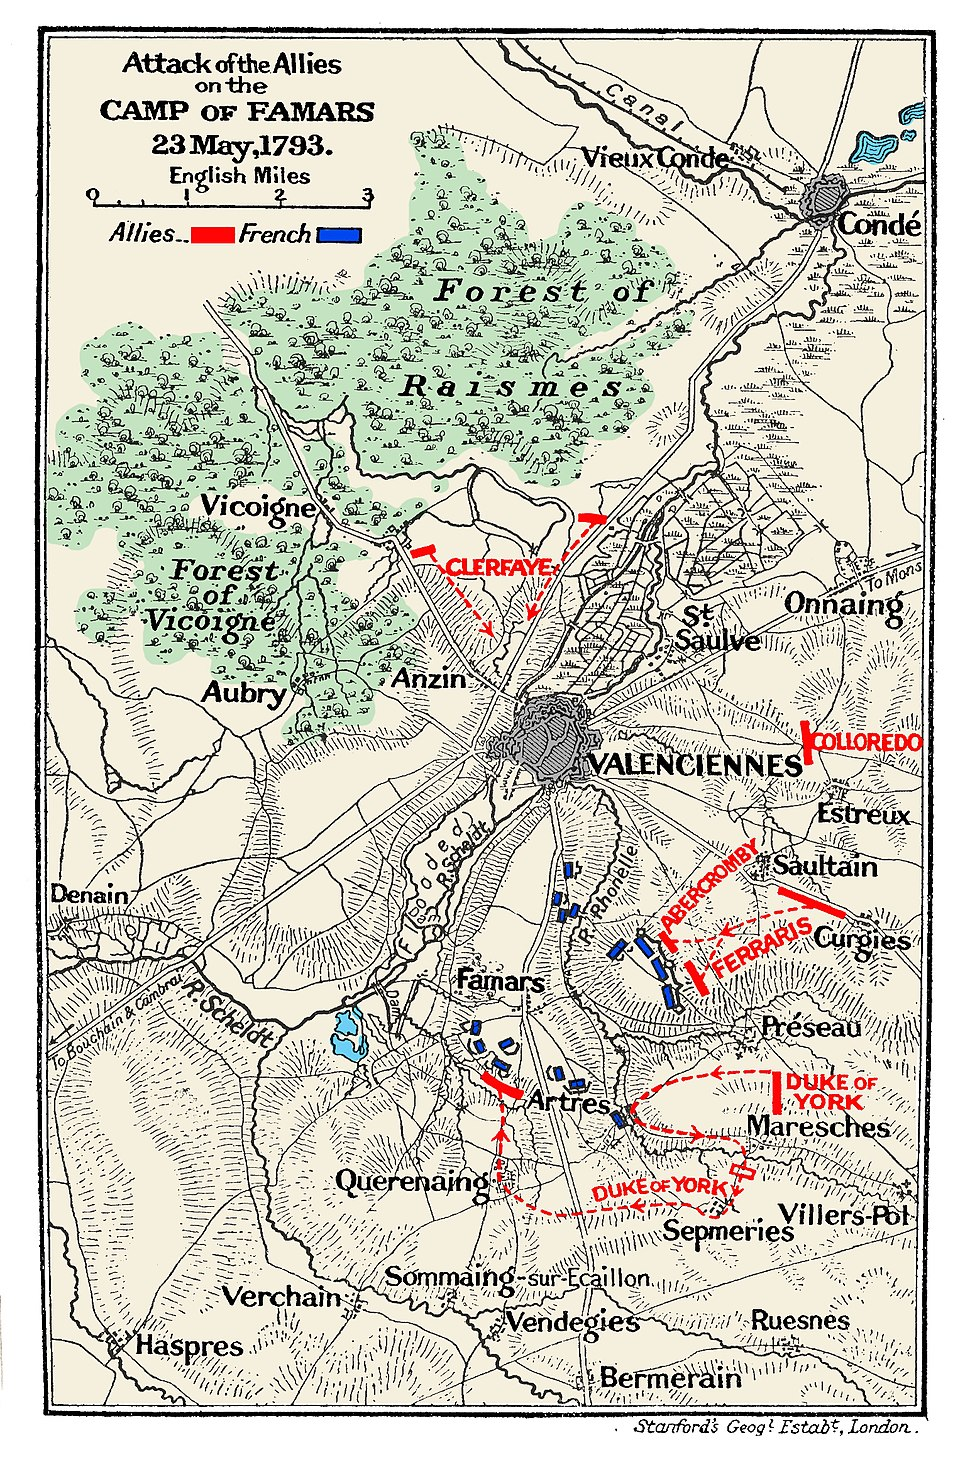 Map of the Battle of Famars